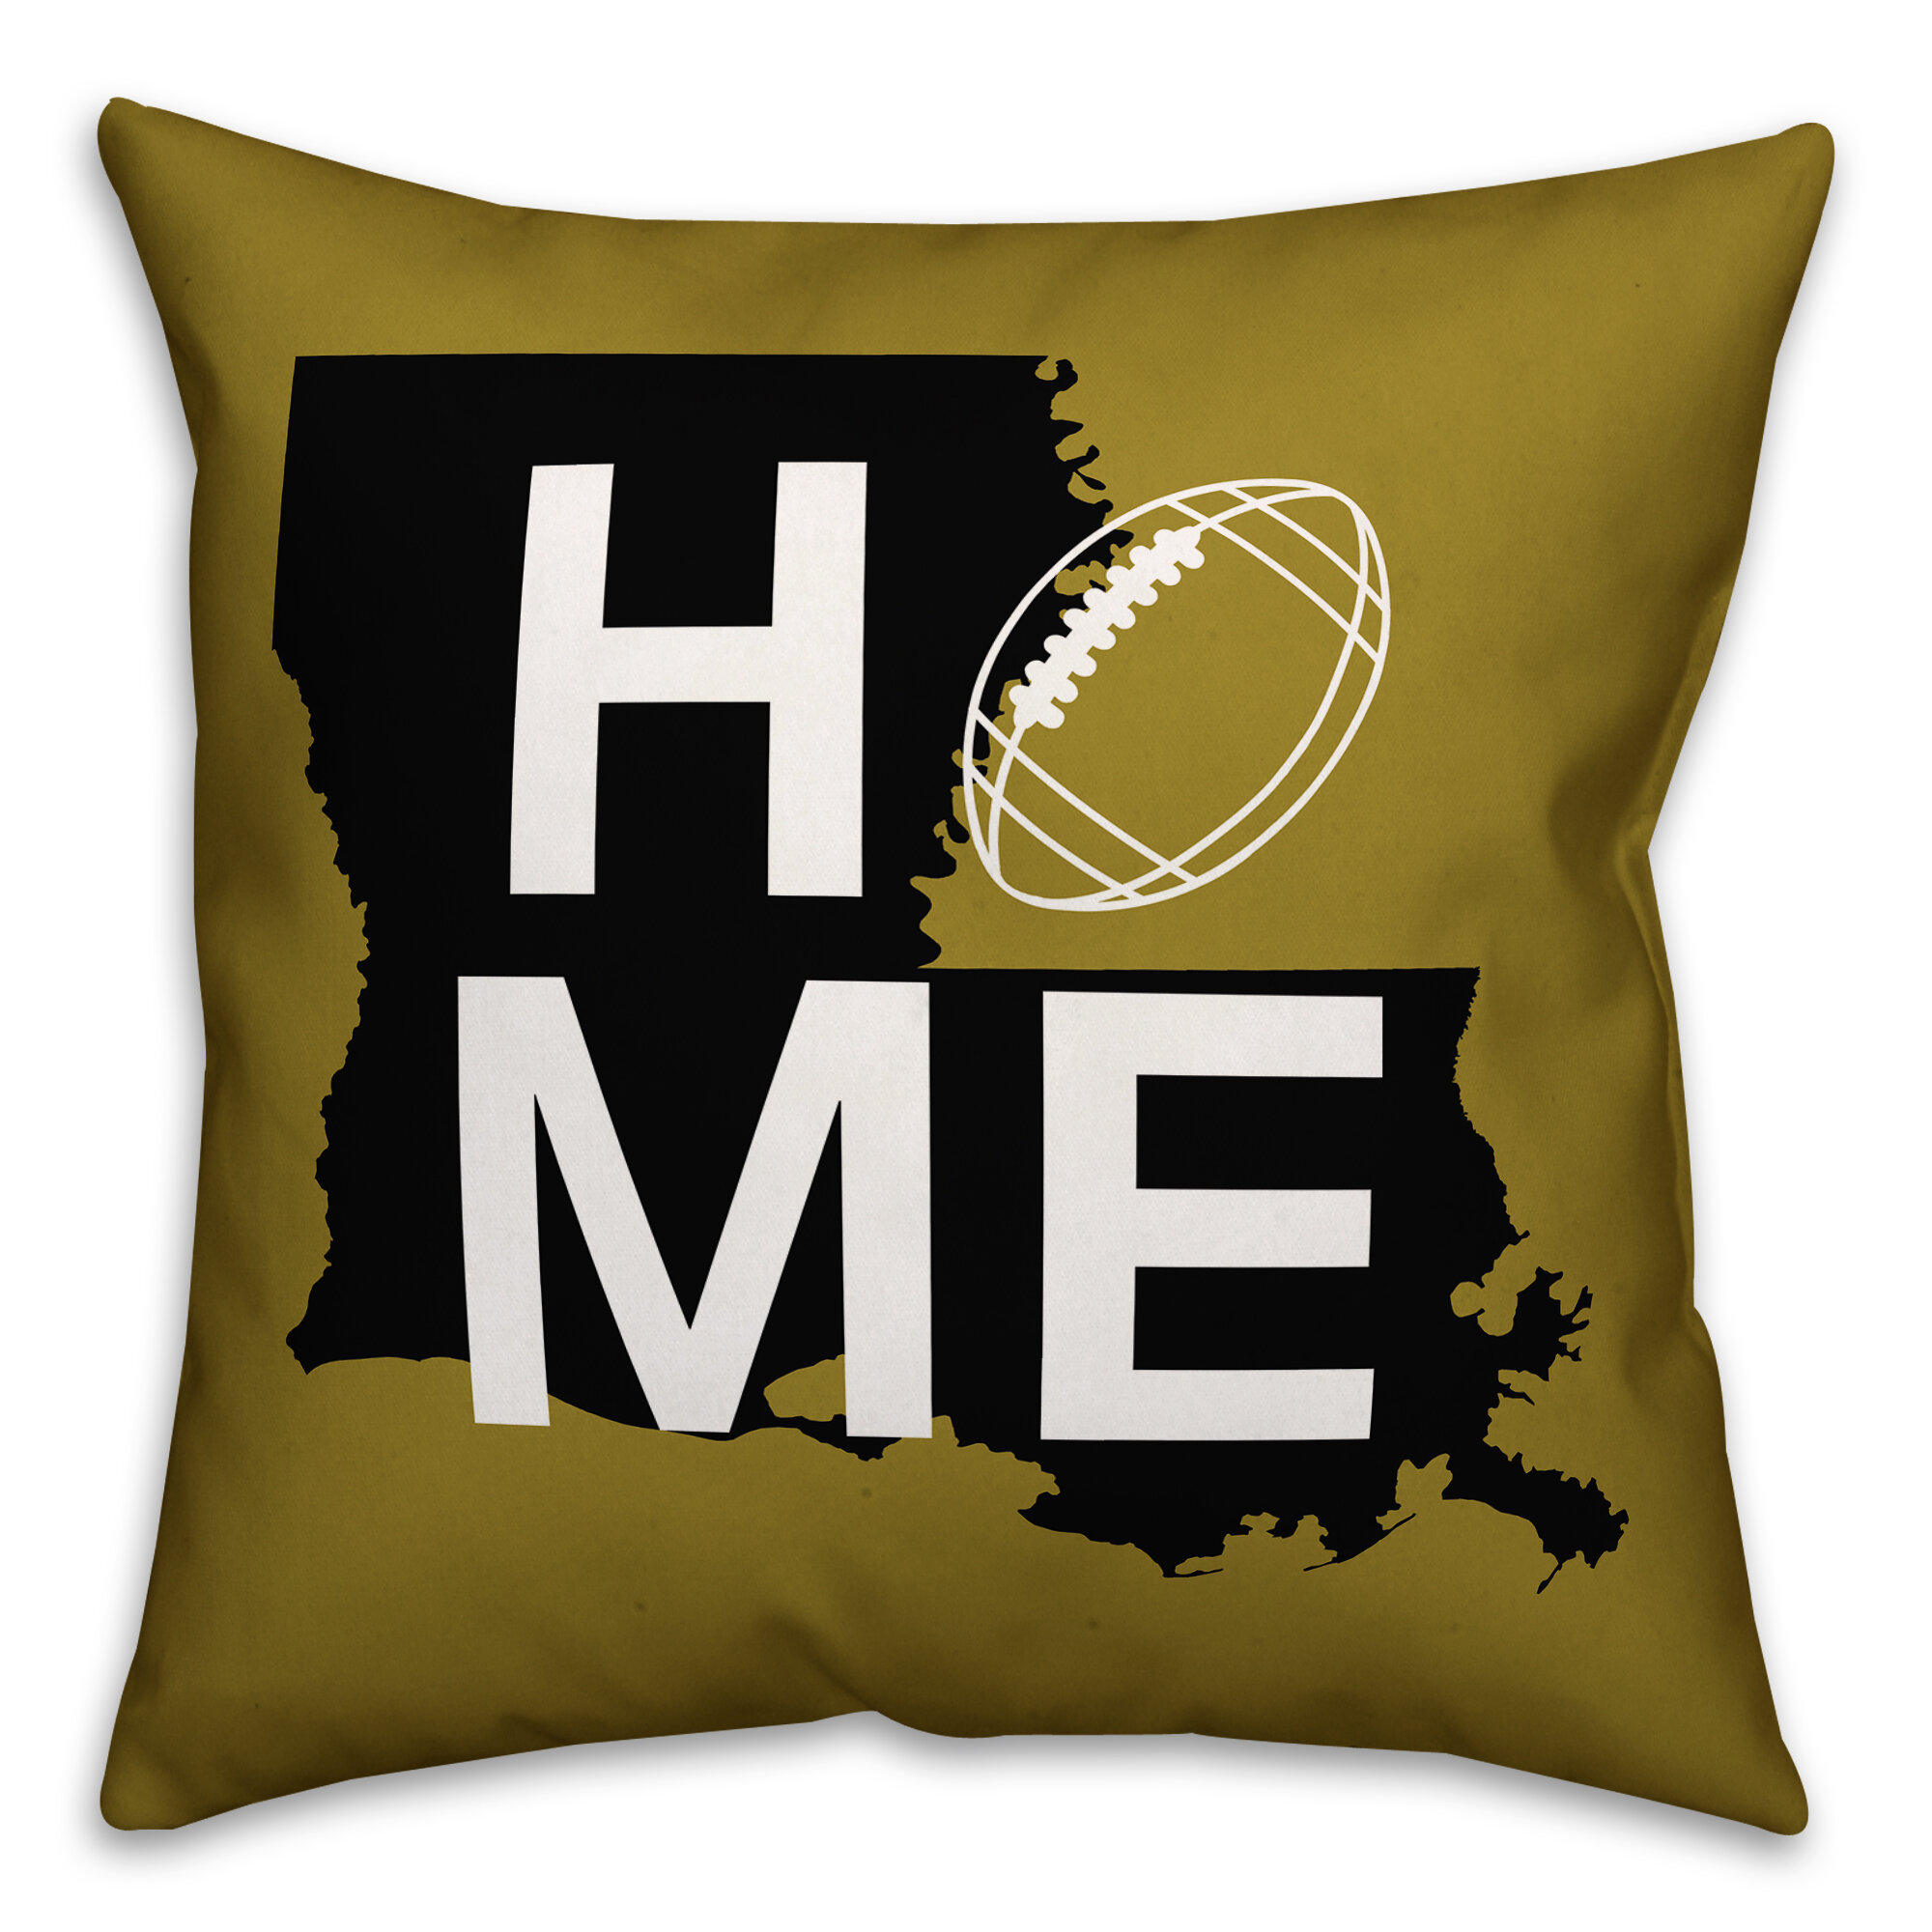 Ebern Designs Darling New Orleans Home Football Indoor Outdoor Throw Pillow Wayfair